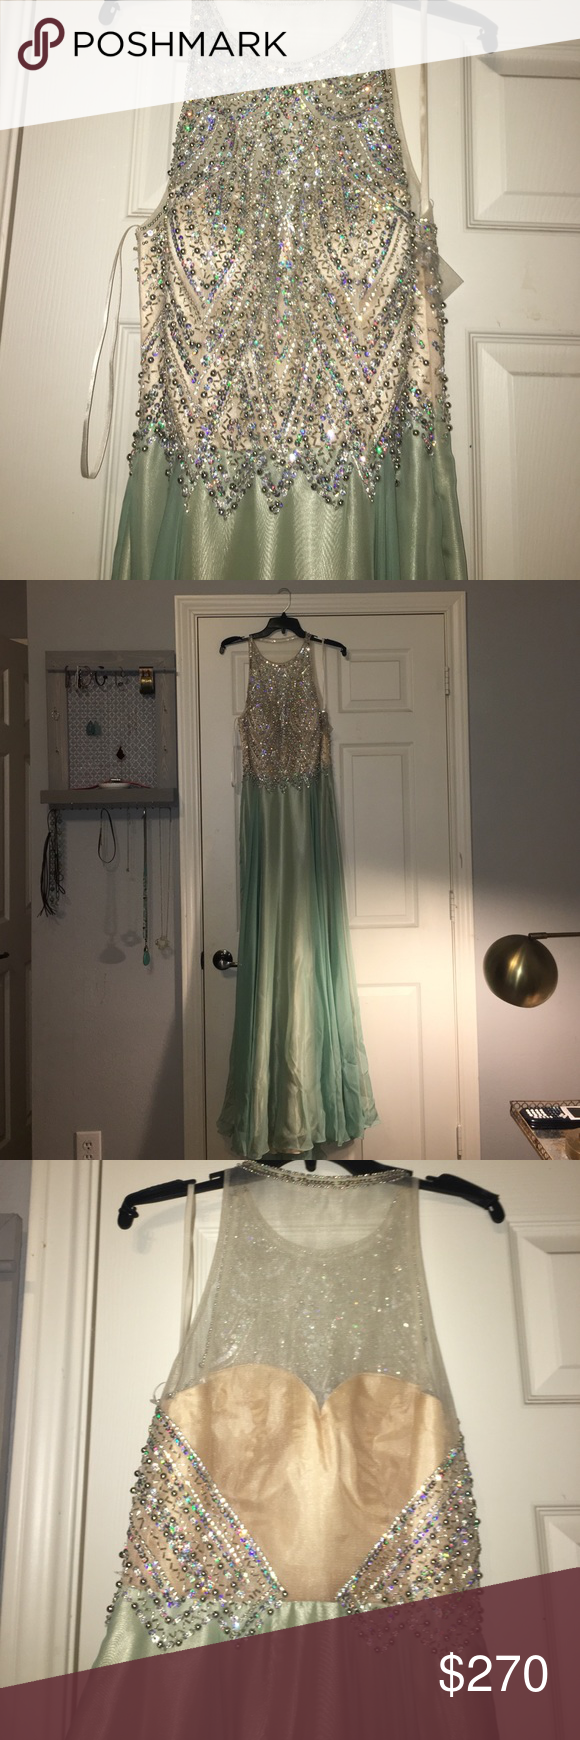 Never been worn sold out terry costa prom dress this dress is